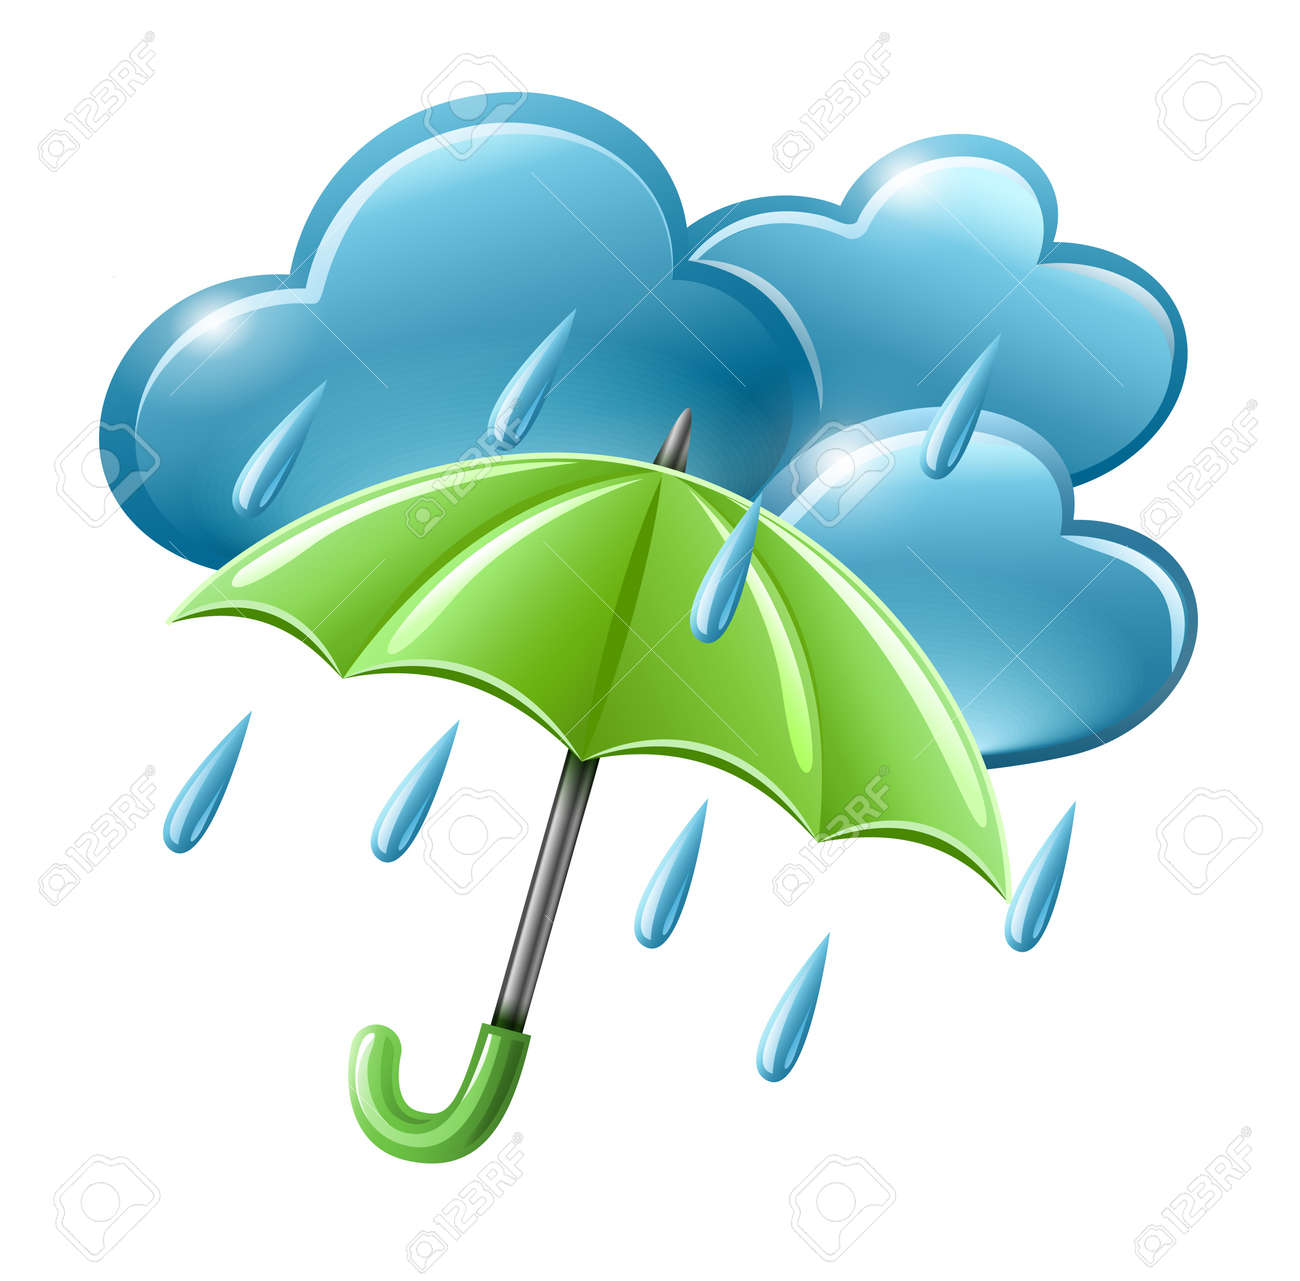 rainy weather icon with clouds and umbrella illustration isolated on white background. Transparent objects used for shadows and lights drawing. Stock Vector - 12998492